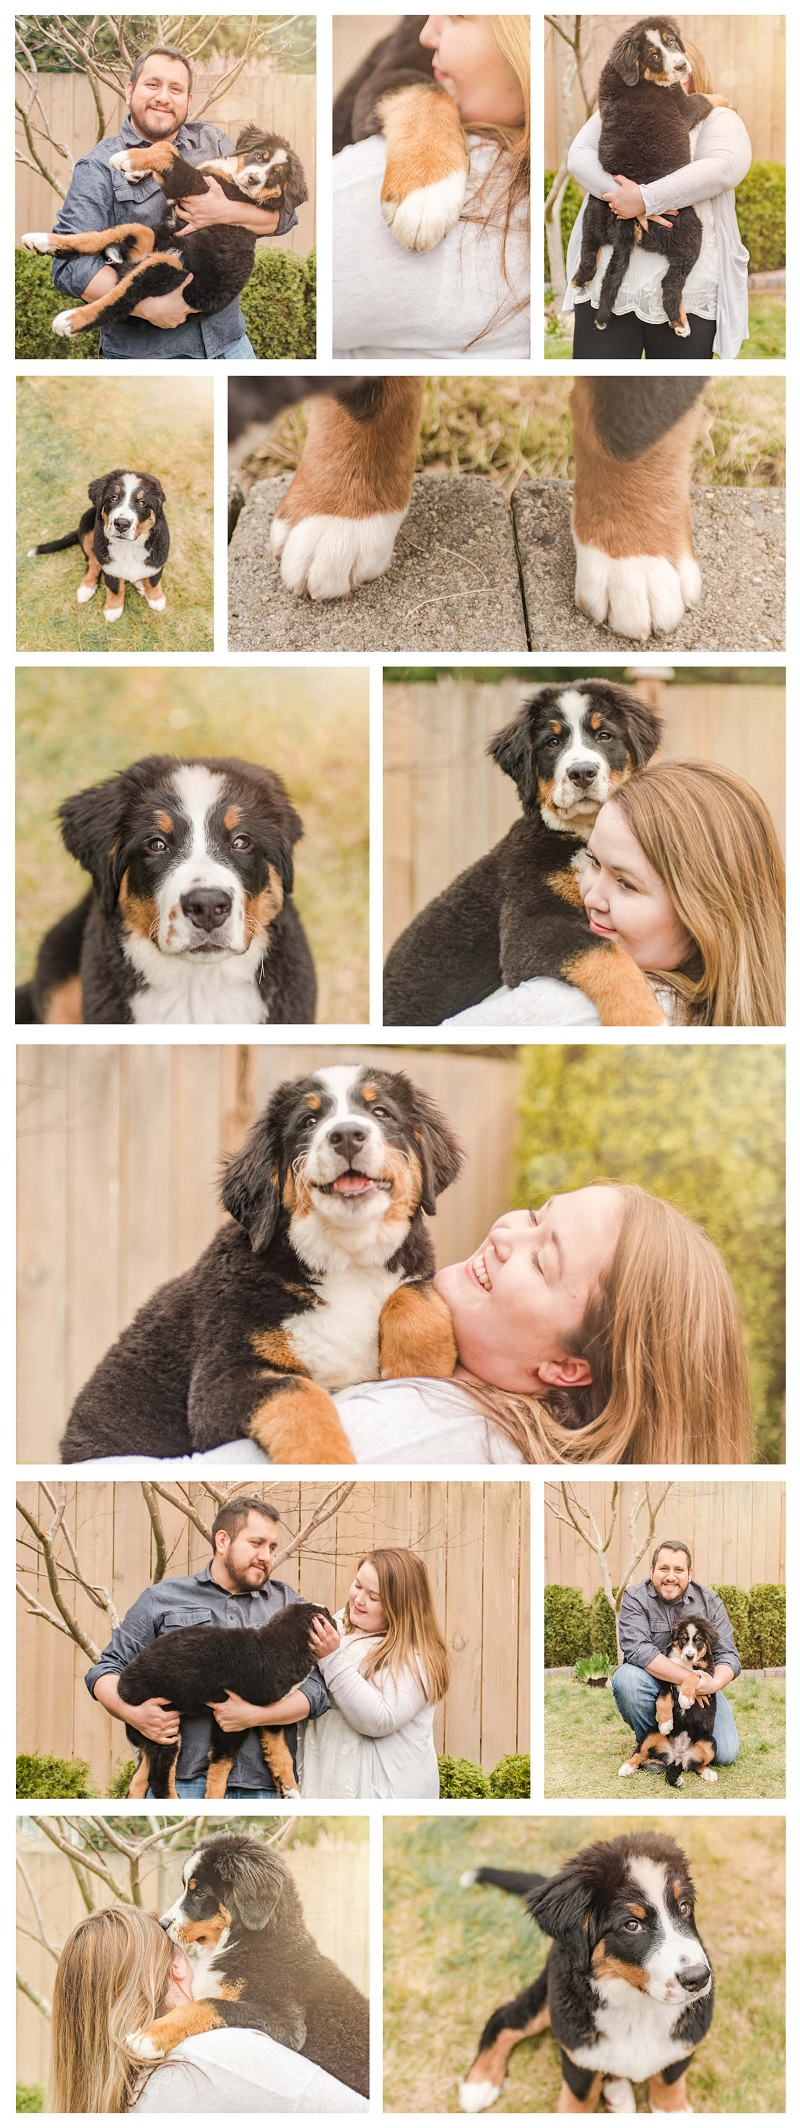 dog-friendly family photos with a puppy, Berner | ©Pearls & Pines Photography | lifestyle pet portraits, Seattle, WA